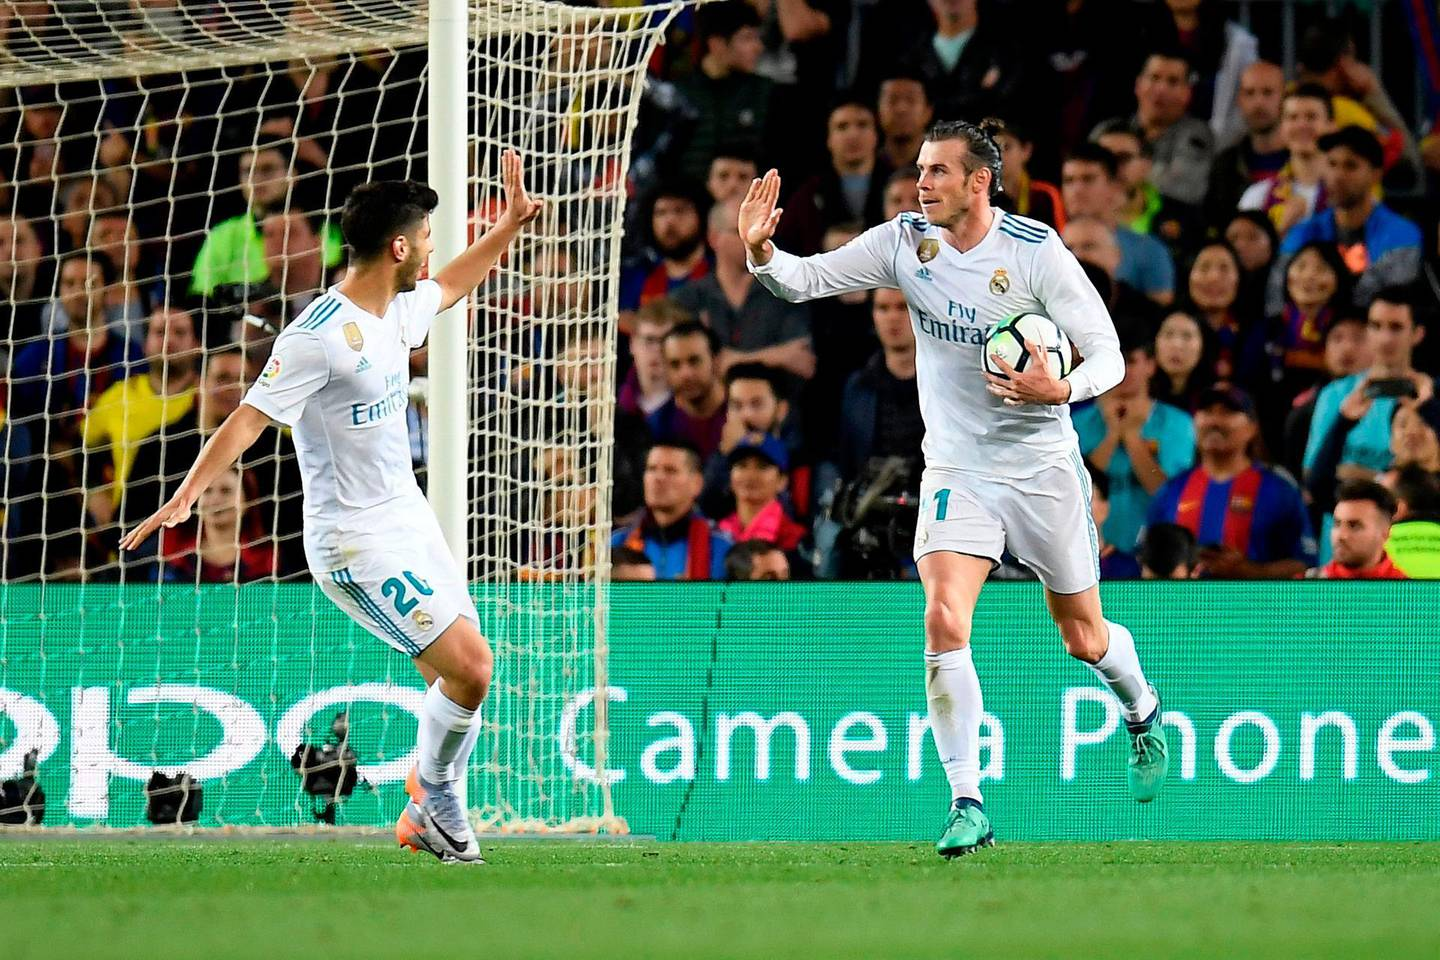 Real Madrid's Welsh forward Gareth Bale (R) celebrates with Real Madrid's Spanish midfielder Marco Asensio after scoring a goal during the Spanish league football match between FC Barcelona and Real Madrid CF at the Camp Nou stadium in Barcelona on May 6, 2018. / AFP PHOTO / LLUIS GENE